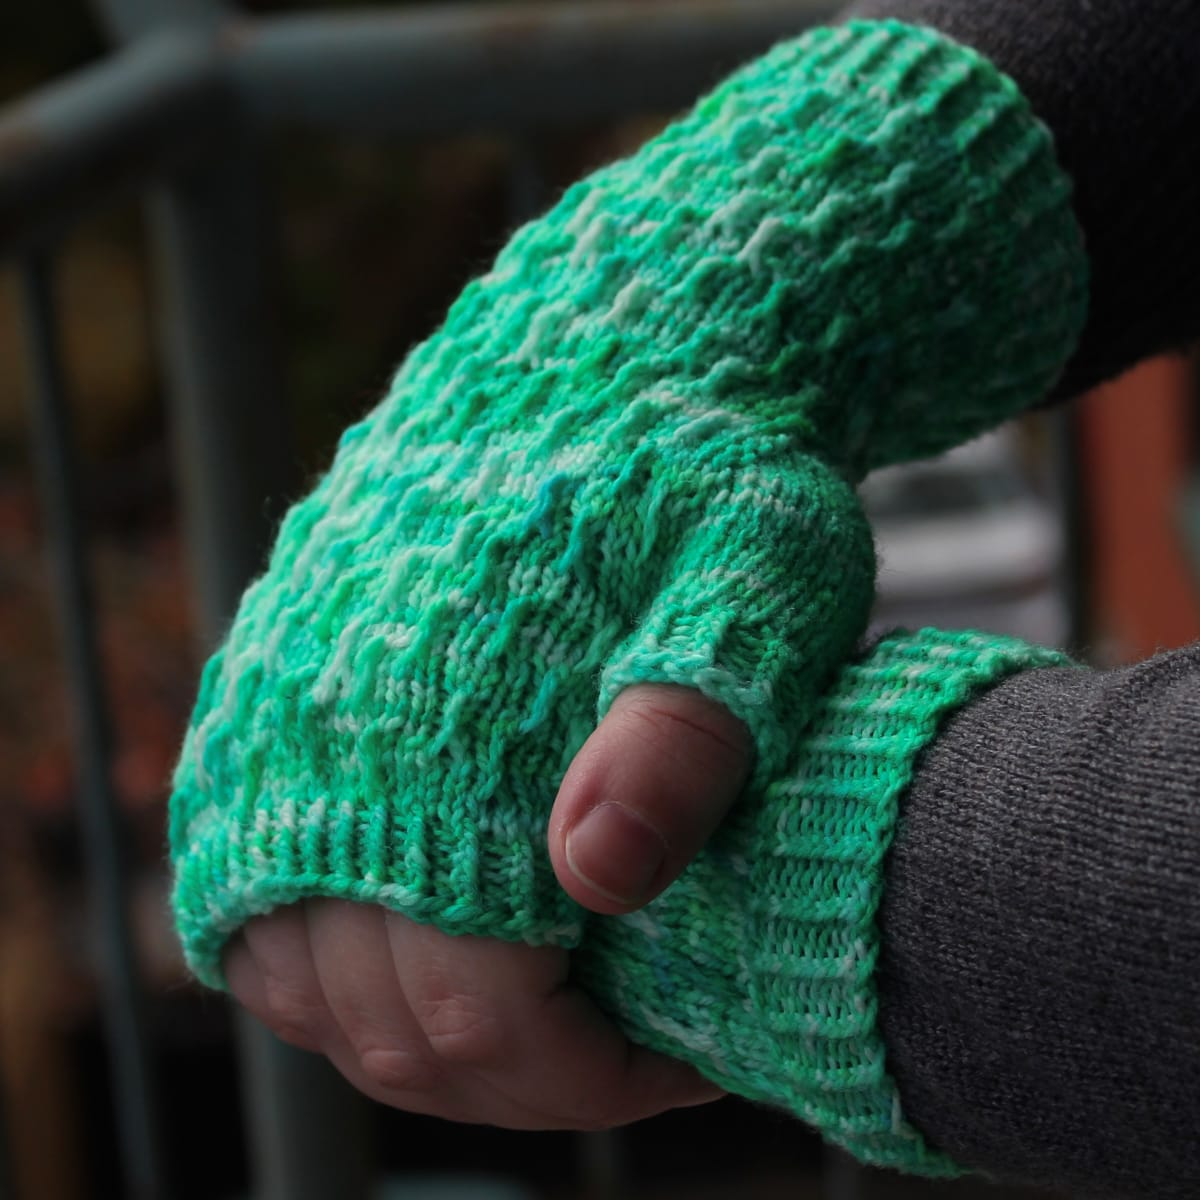 Side view of hands draped over each other wearing bright green fingerless mitts with twisted surface detail.